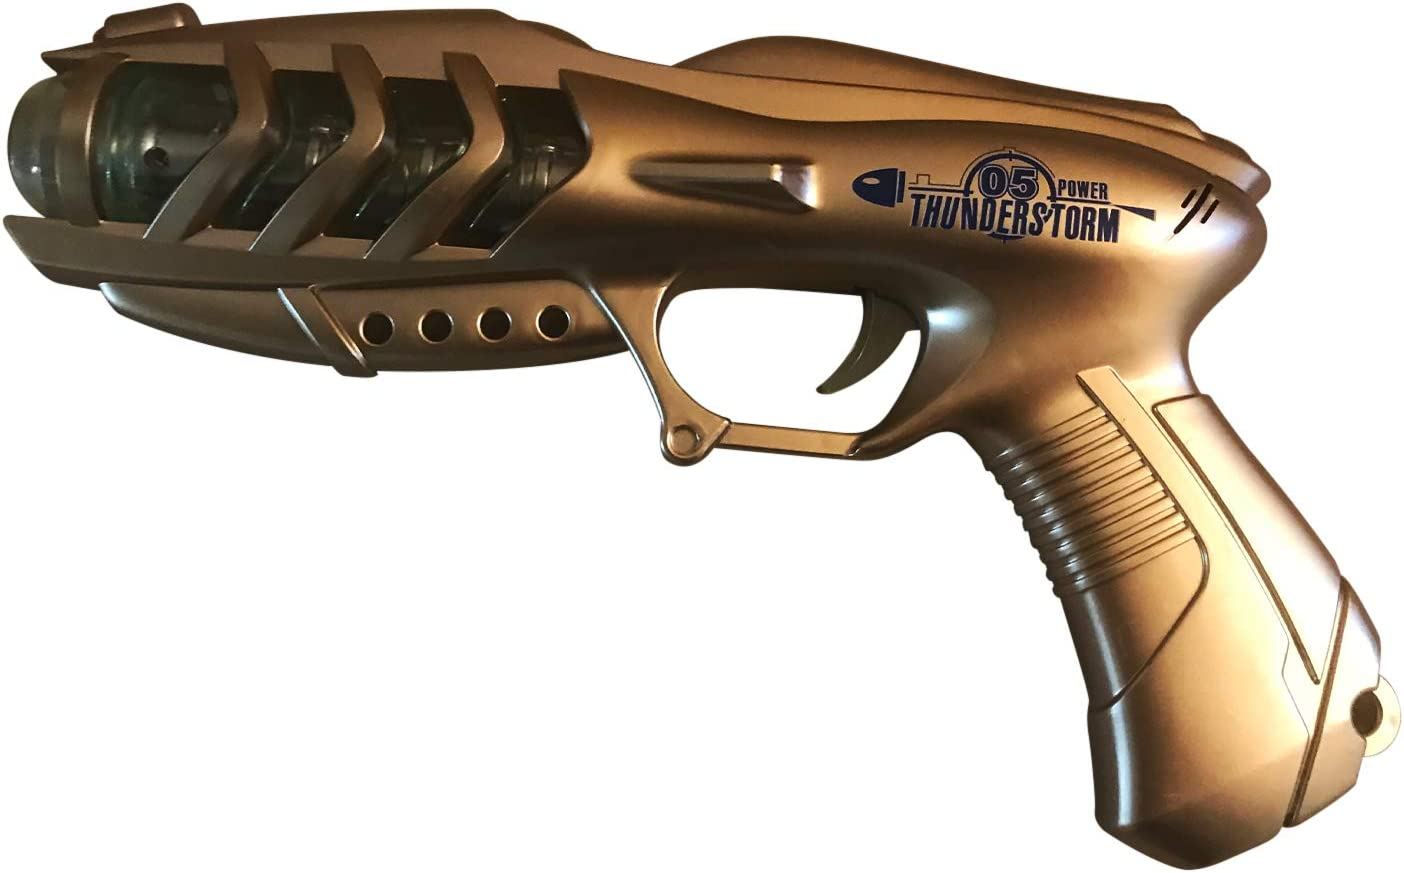 LilPals Super Space Blaster Gun - Phaser Features Flashing LEDs and Sounds. Supper Fun and Colorful